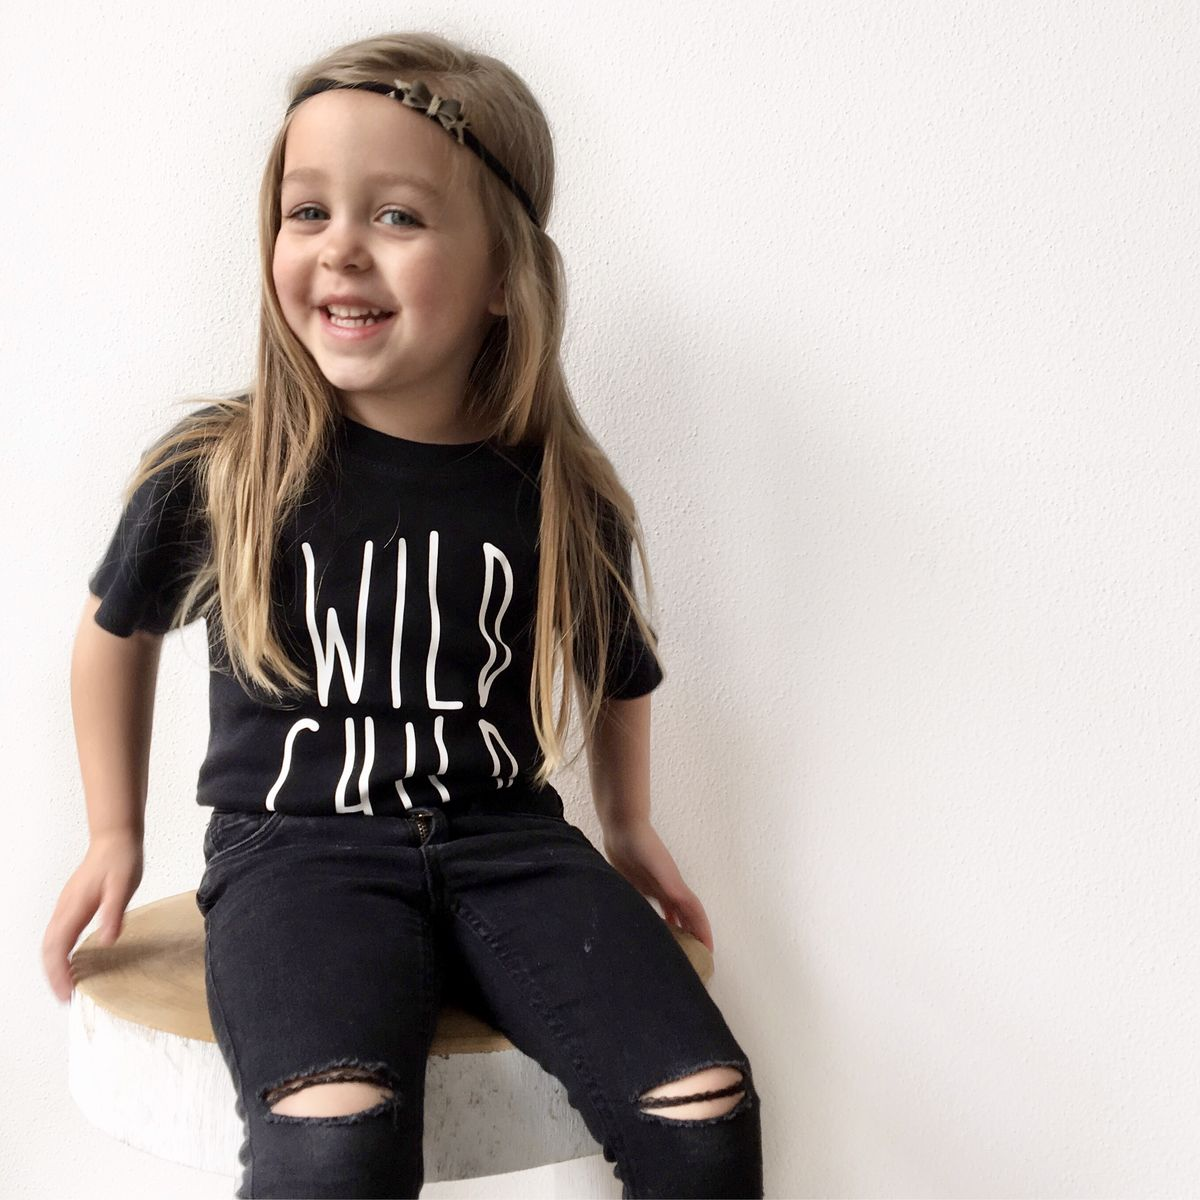 Wild Child Black or White T-Shirt - product images  of